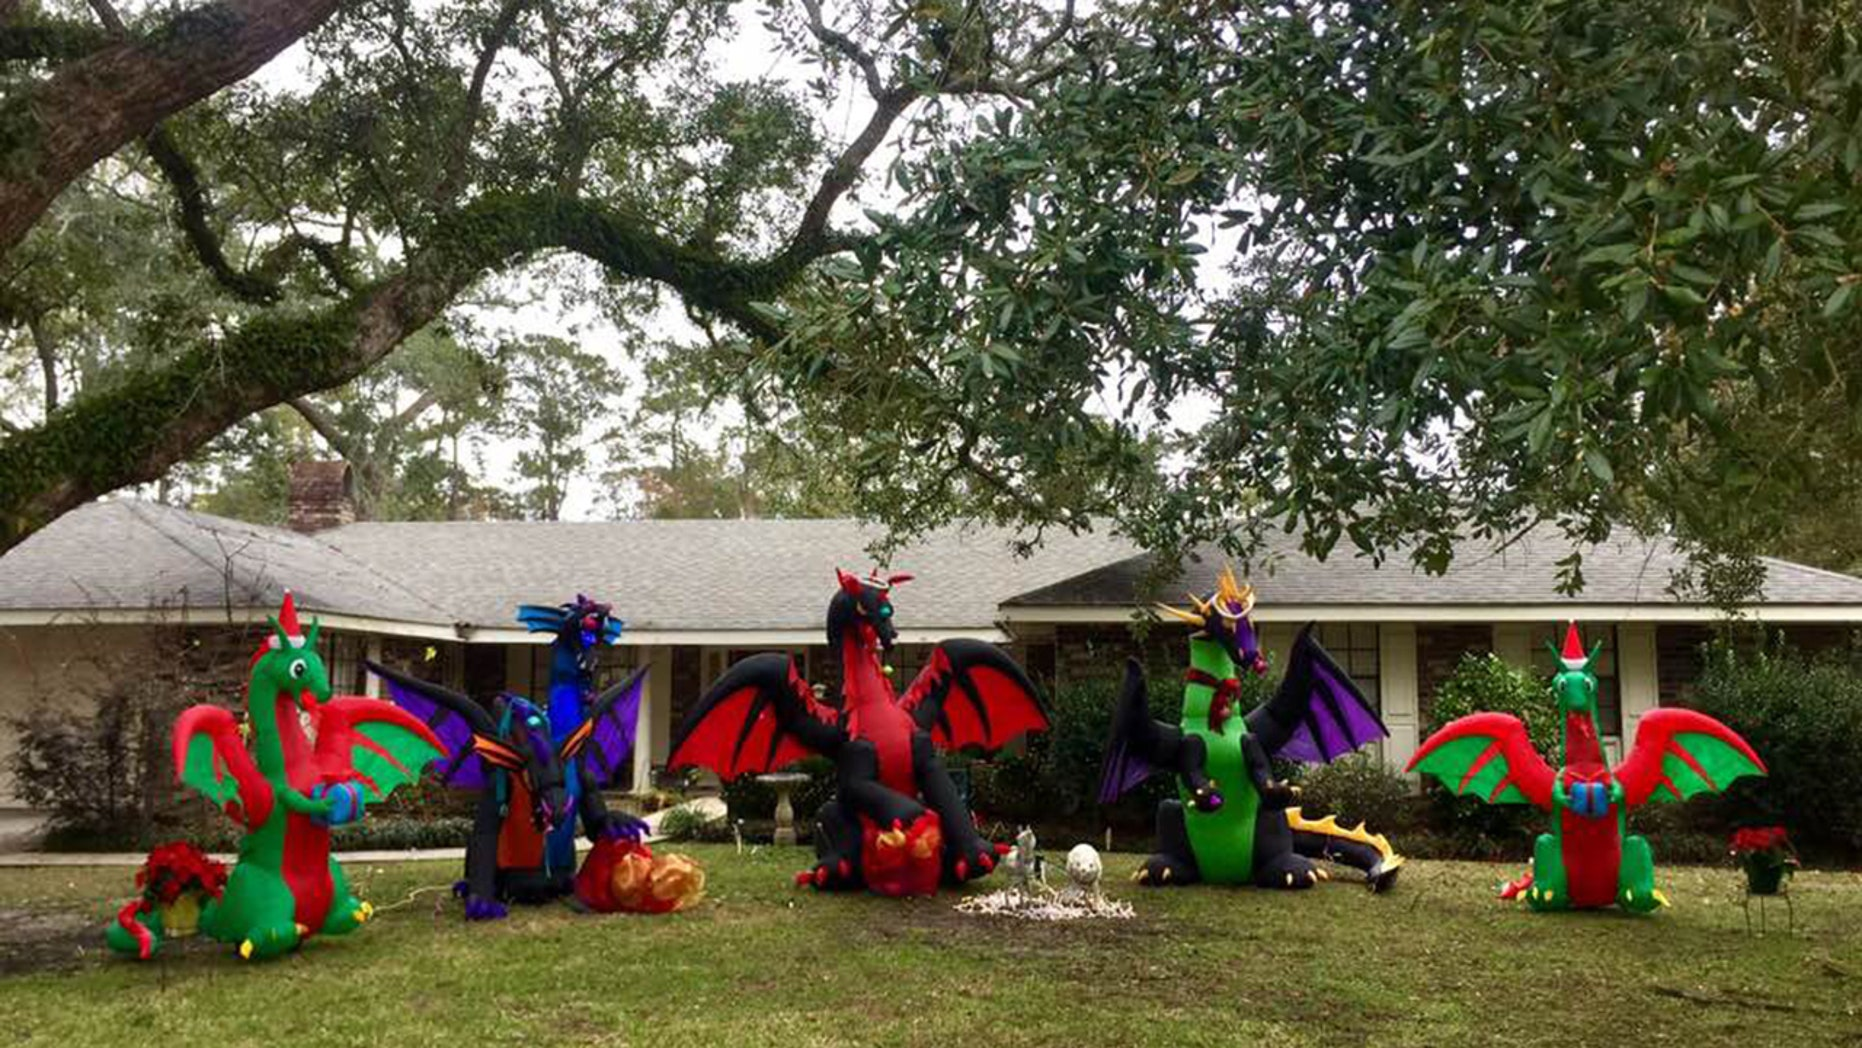 Fantasy author Diana Rowland added two more dragons to her Christmas ad after she received an anonymous note from a neighbor asking her to tear her down.